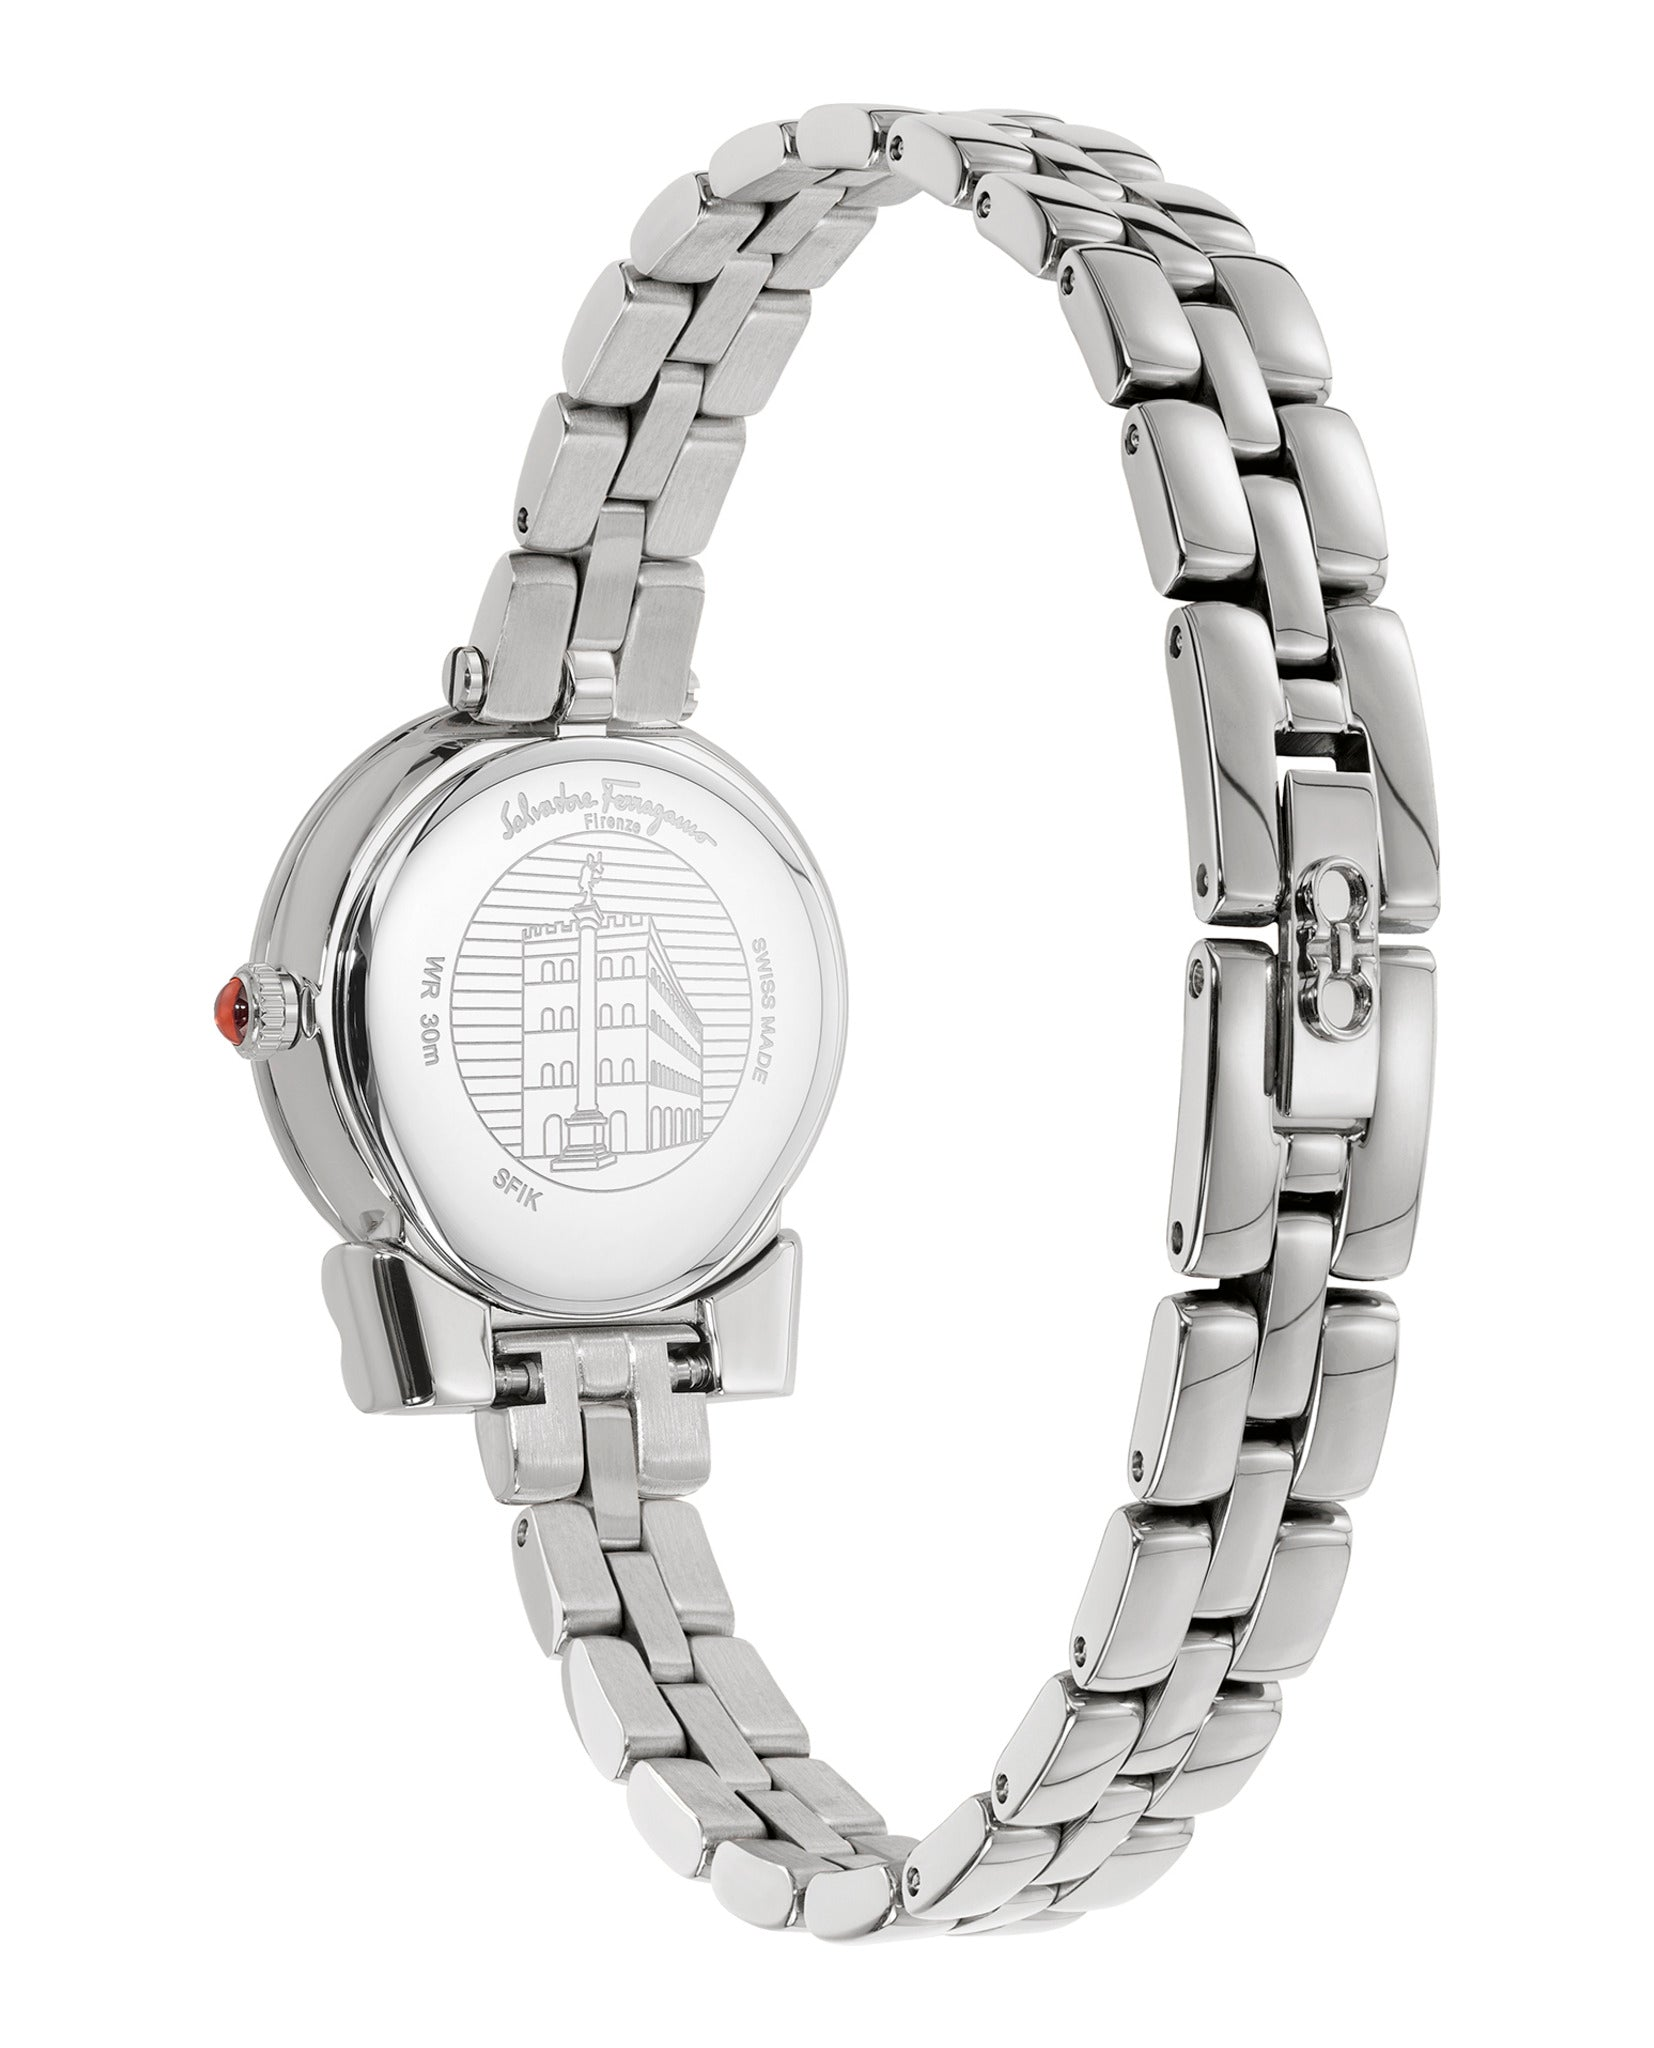 Salvatore Ferragamo Gancini Watch